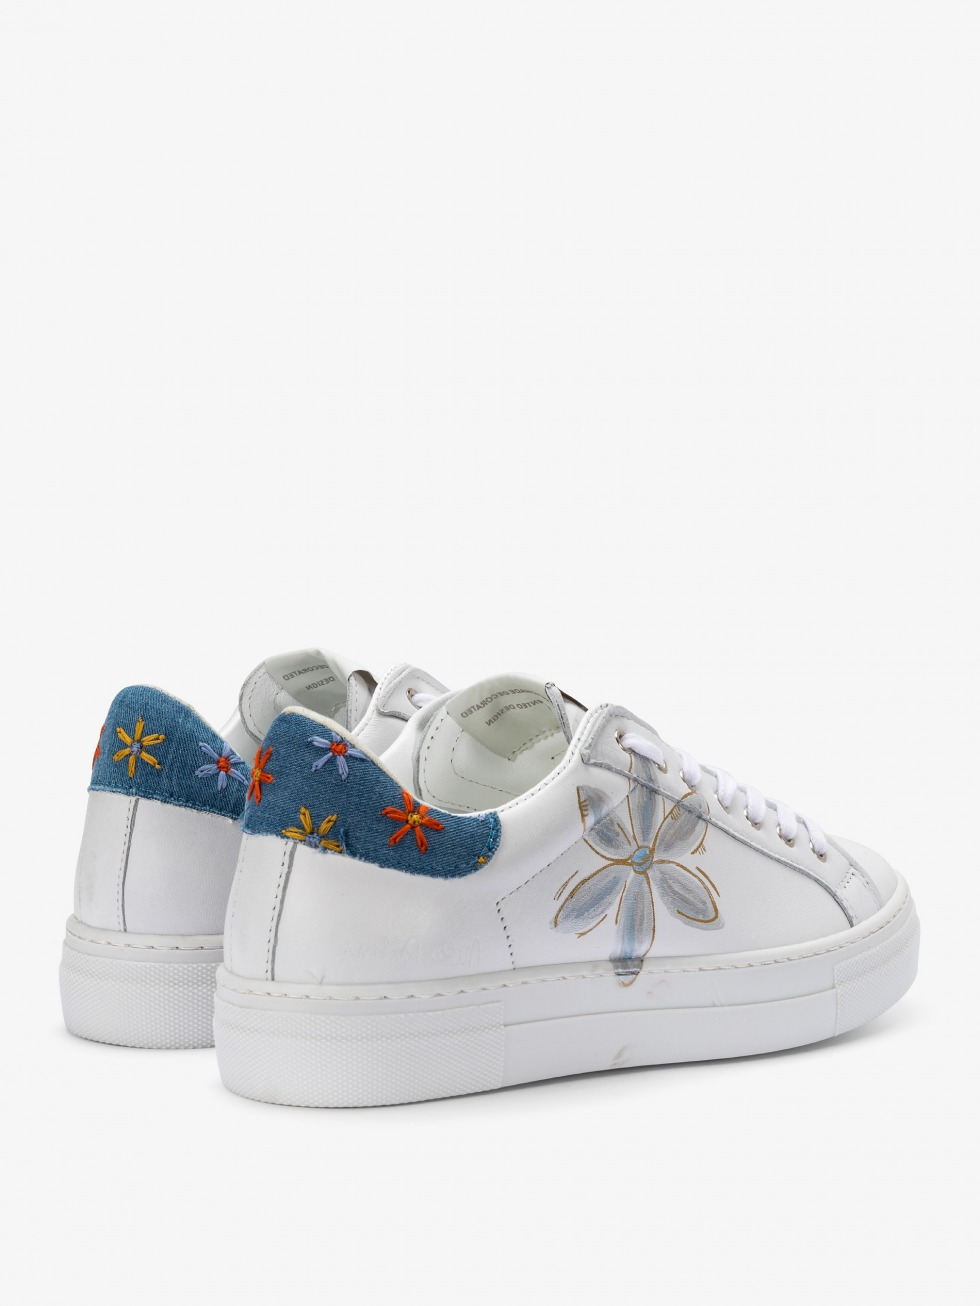 Sneakers estive da donna - Martini Flowers